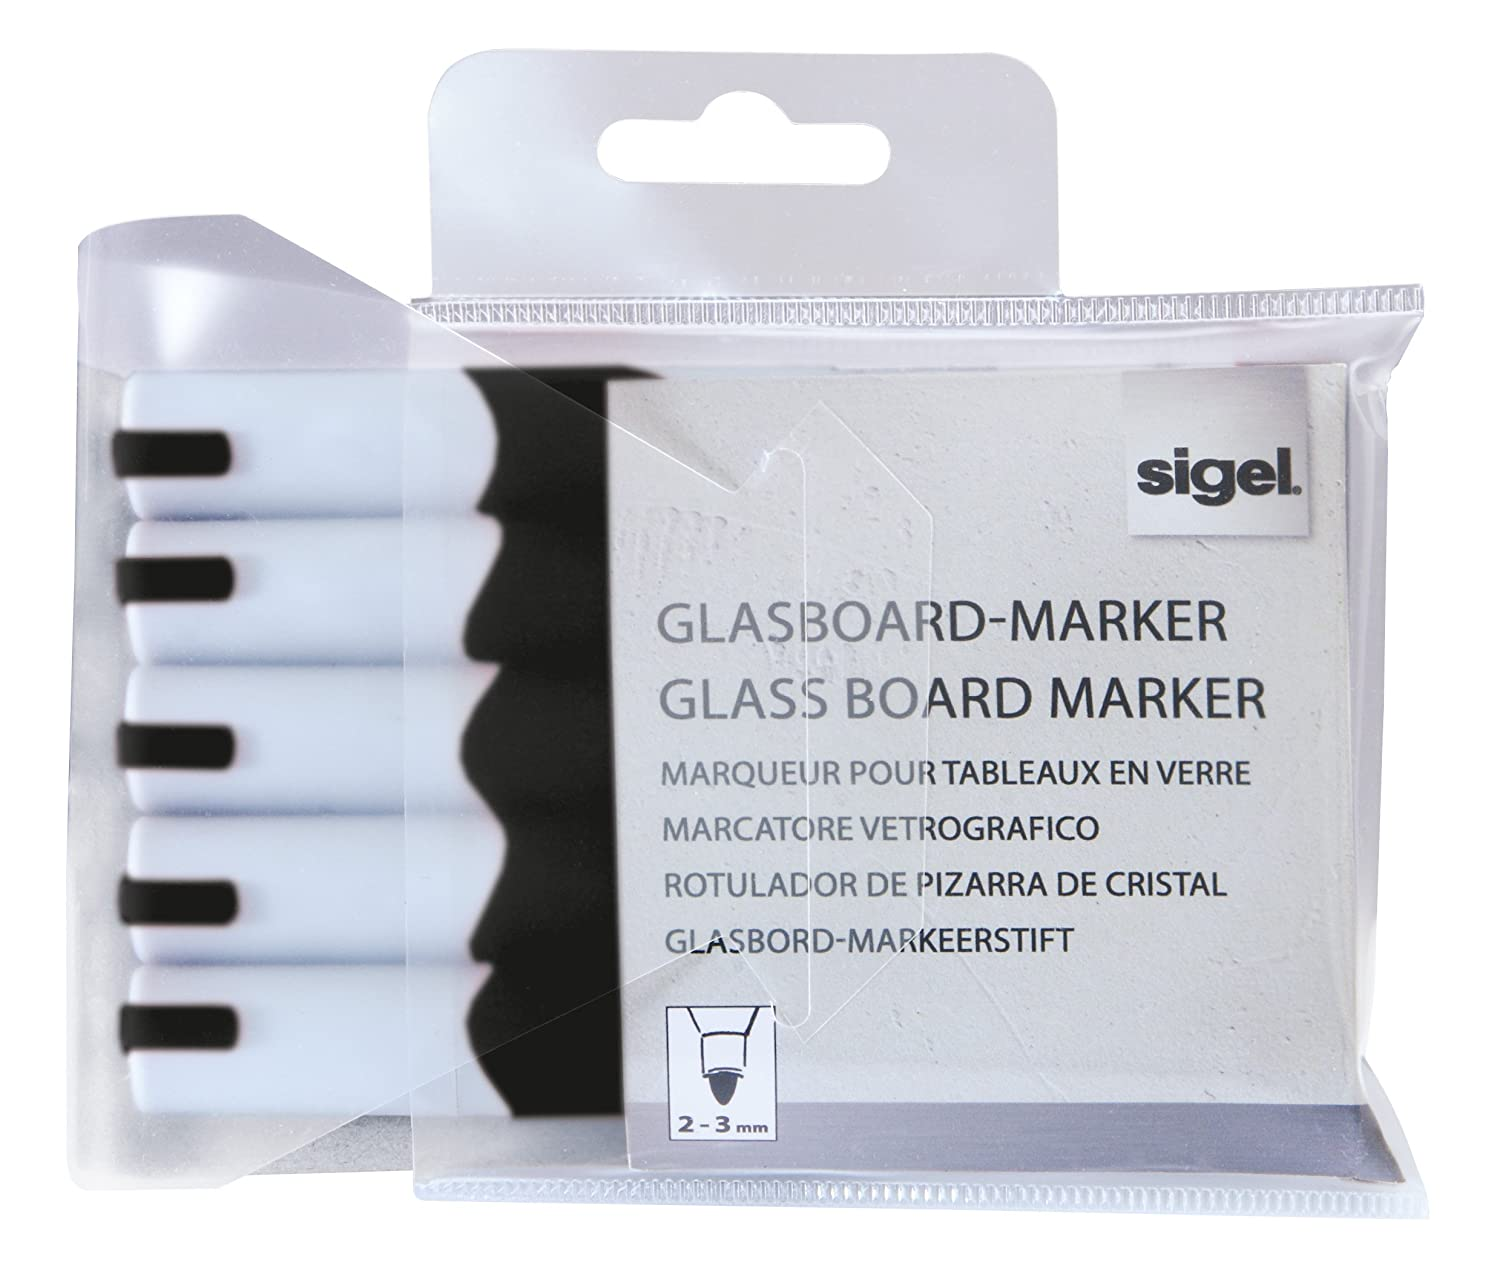 Amazon.com : Sigel GL710 2-3 mm Round Nib Non-Permanent Ink ...